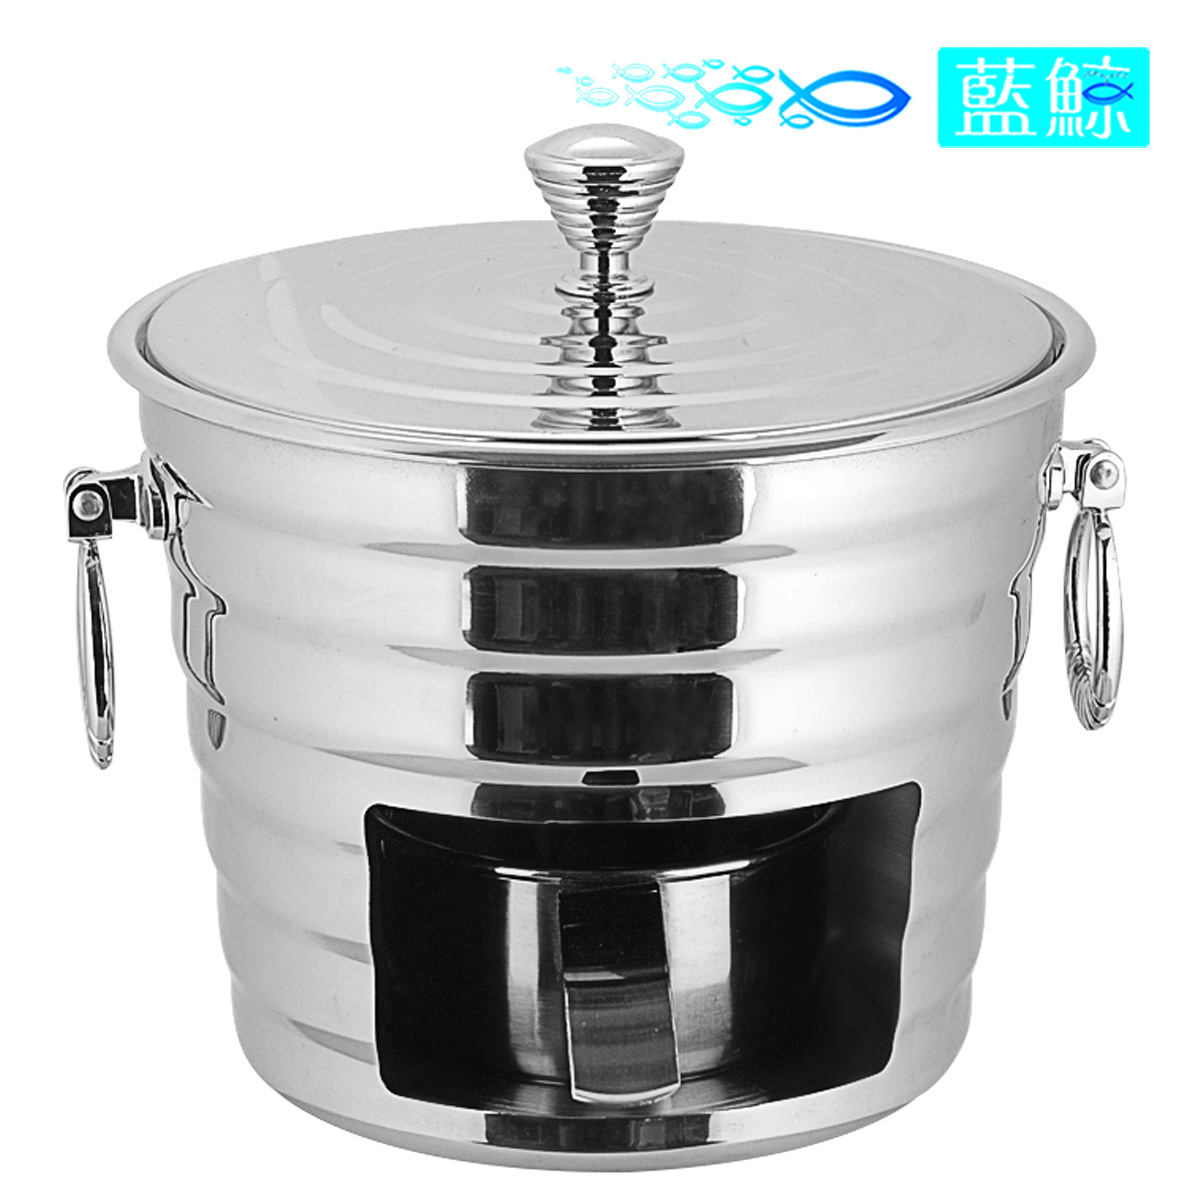 Blue whale diamond solid stainless steel liquid alcohol stove dolar beef fondue hotel buffet energy saving small pot